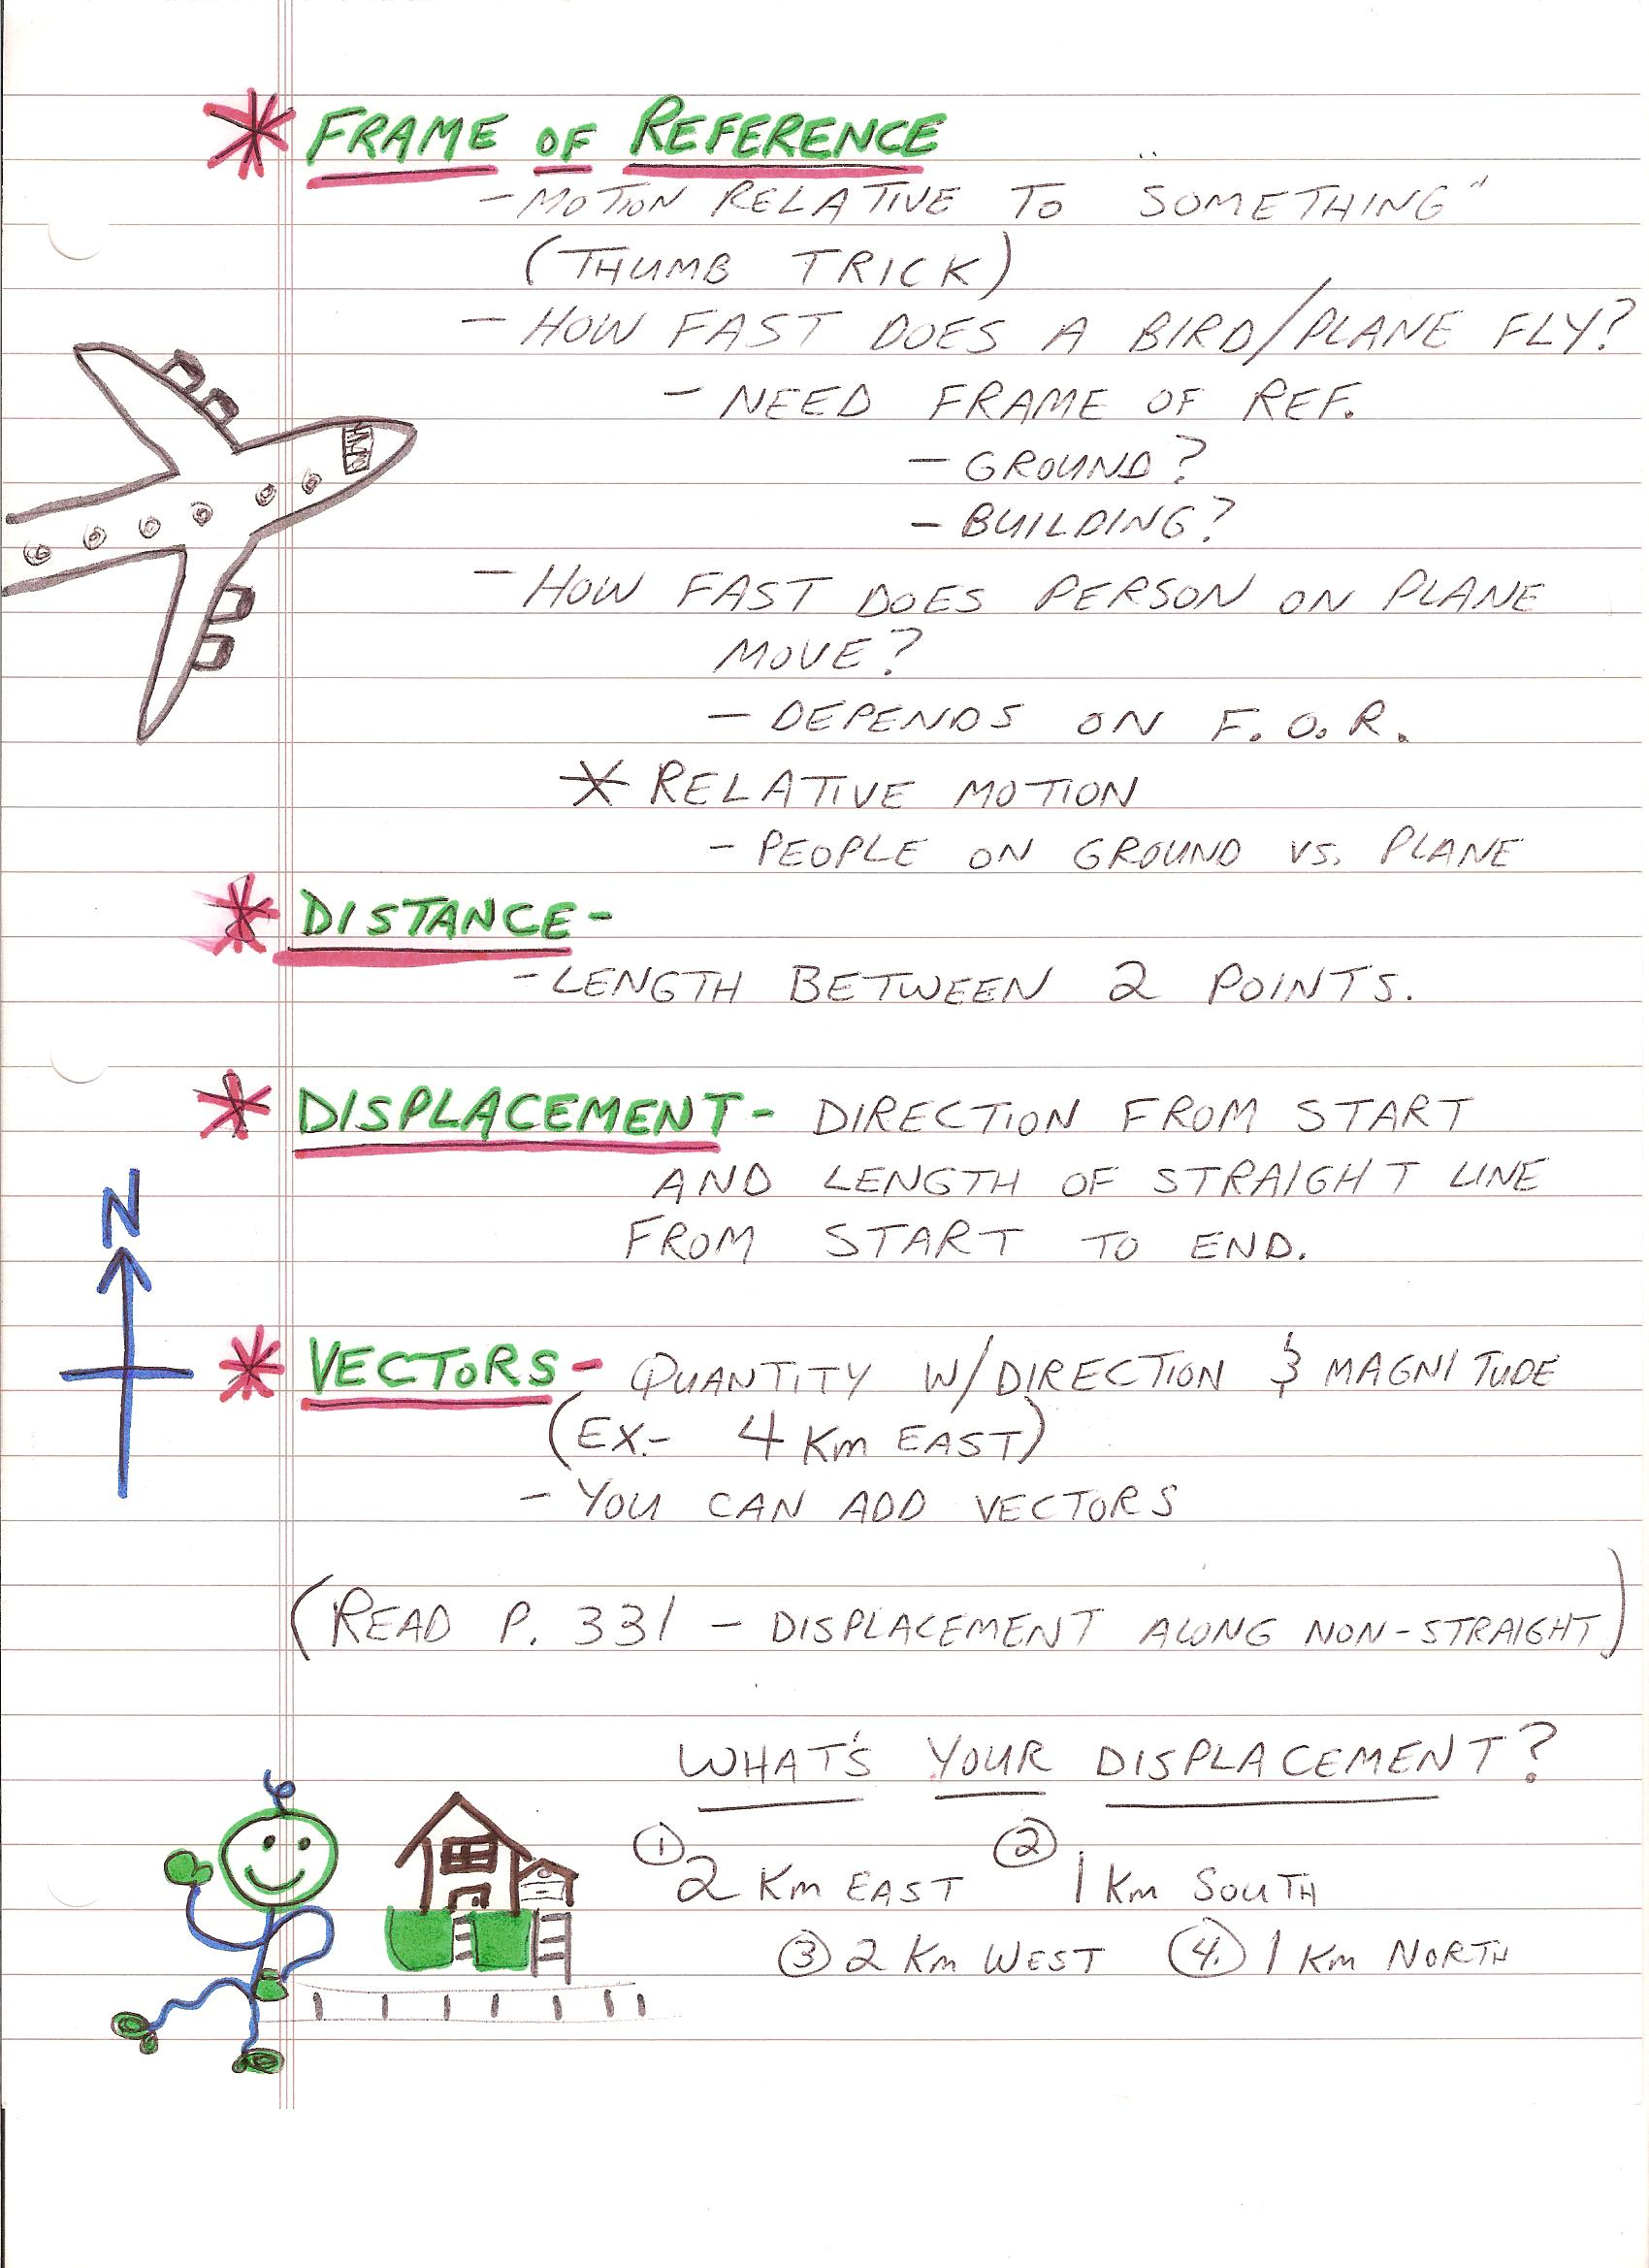 Printables Distance Vs Displacement Worksheet Messygracebook Thousands Of Printable Activities